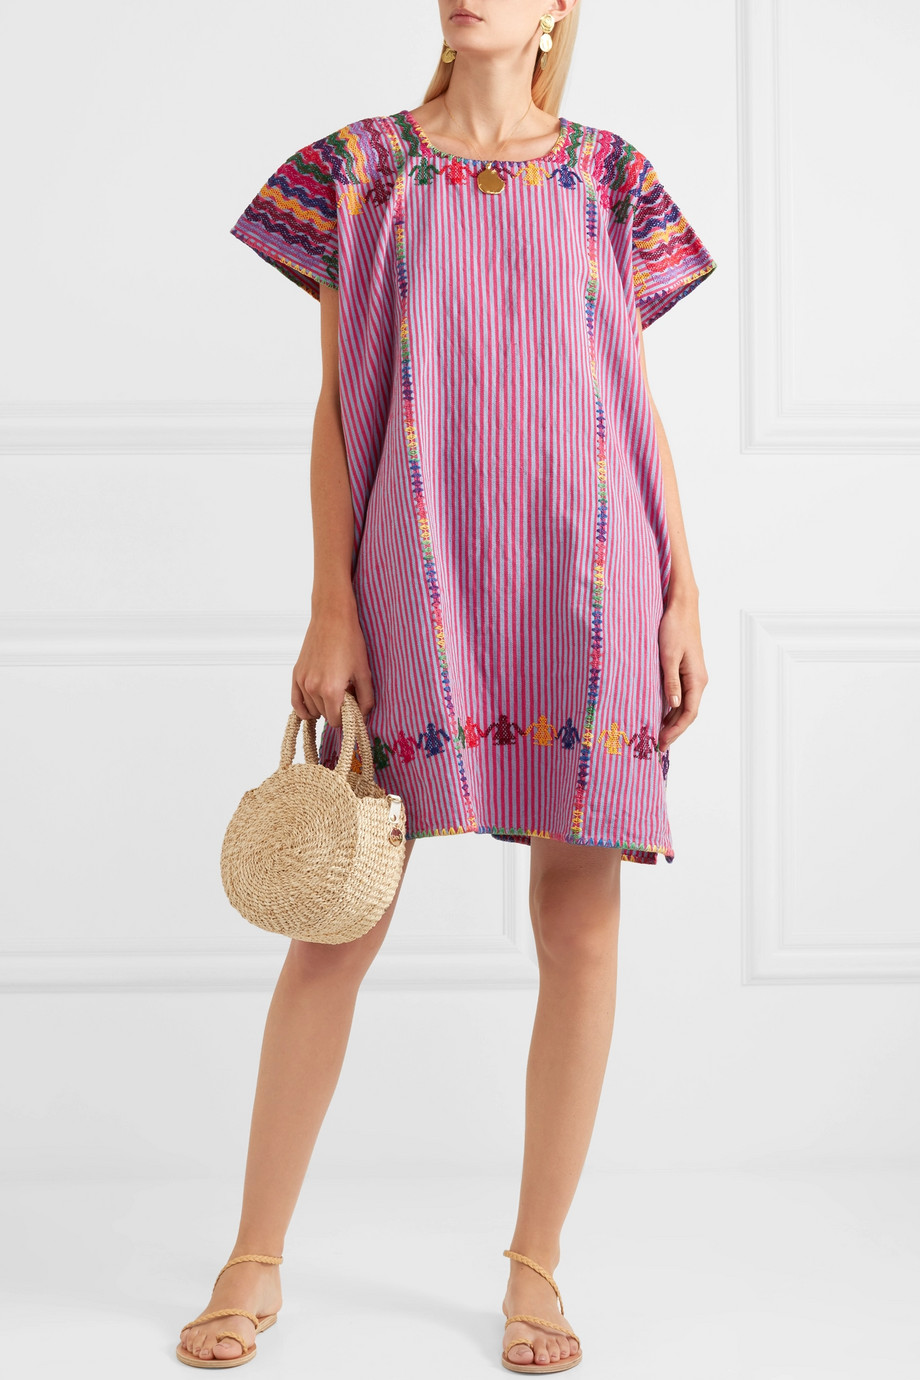 Pippa Holt Embroidered Stripe Cotton Caftan Mexican Dress